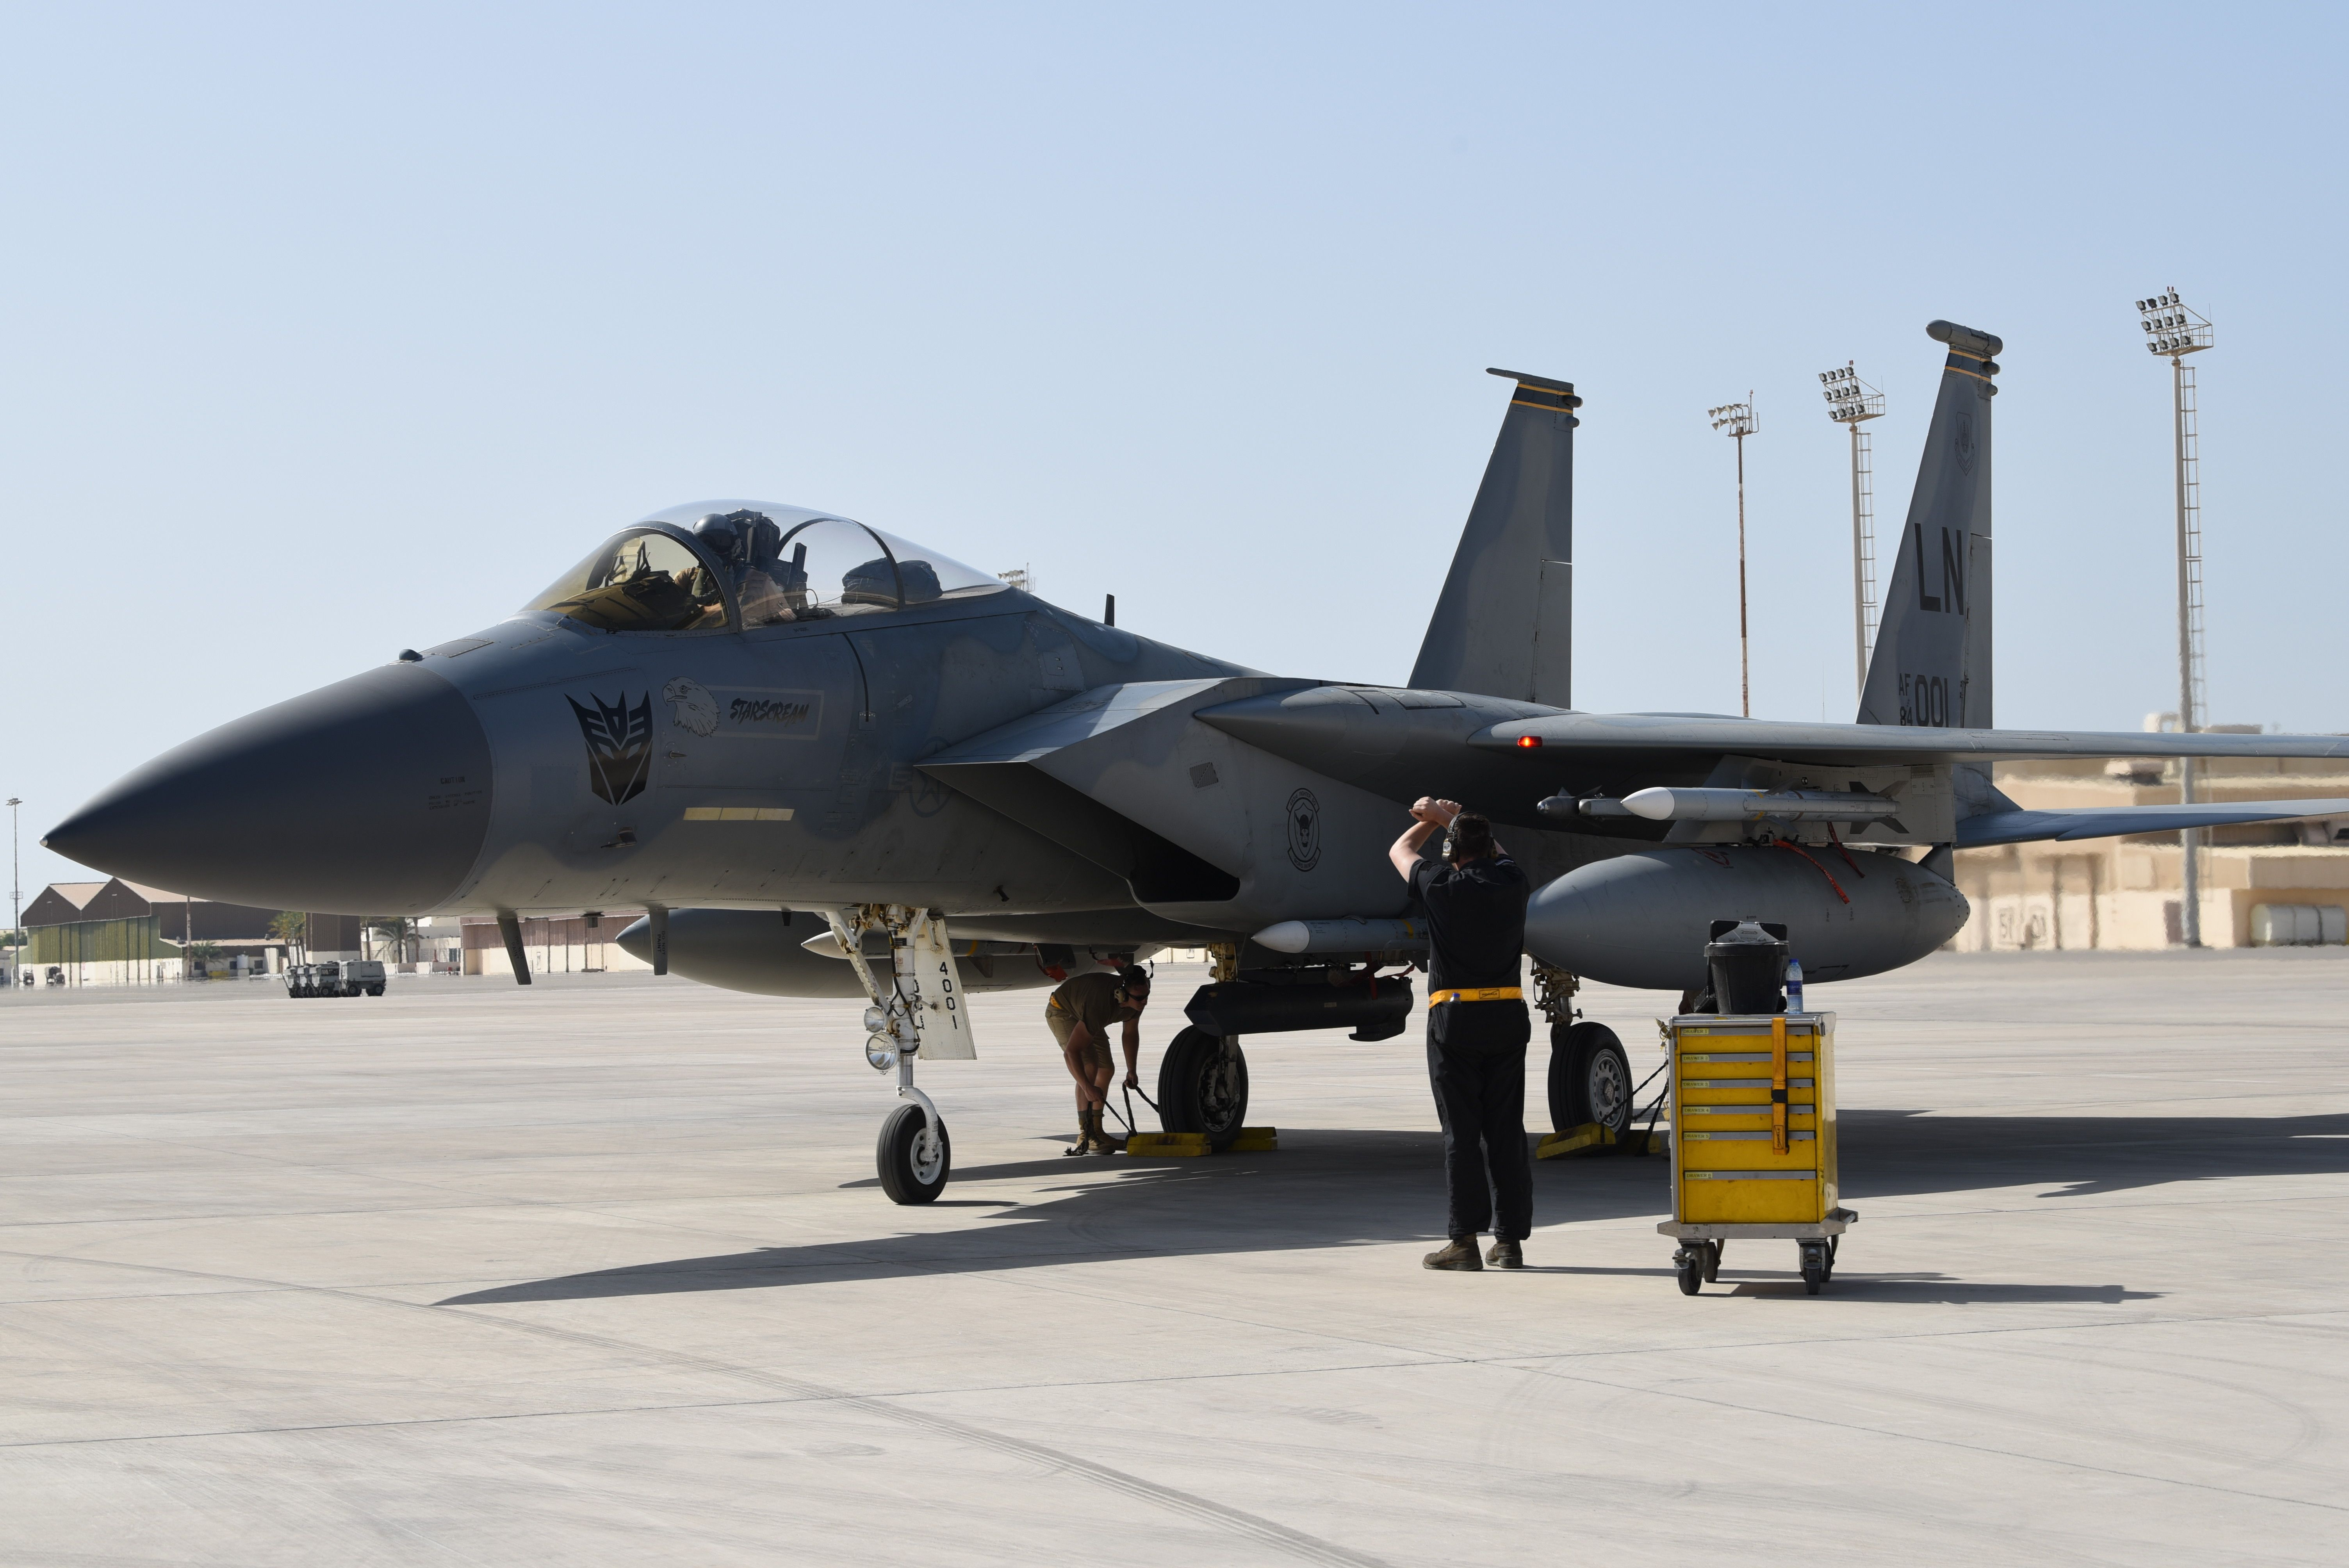 Official Images of U.S. Air Force F15C Eagle with